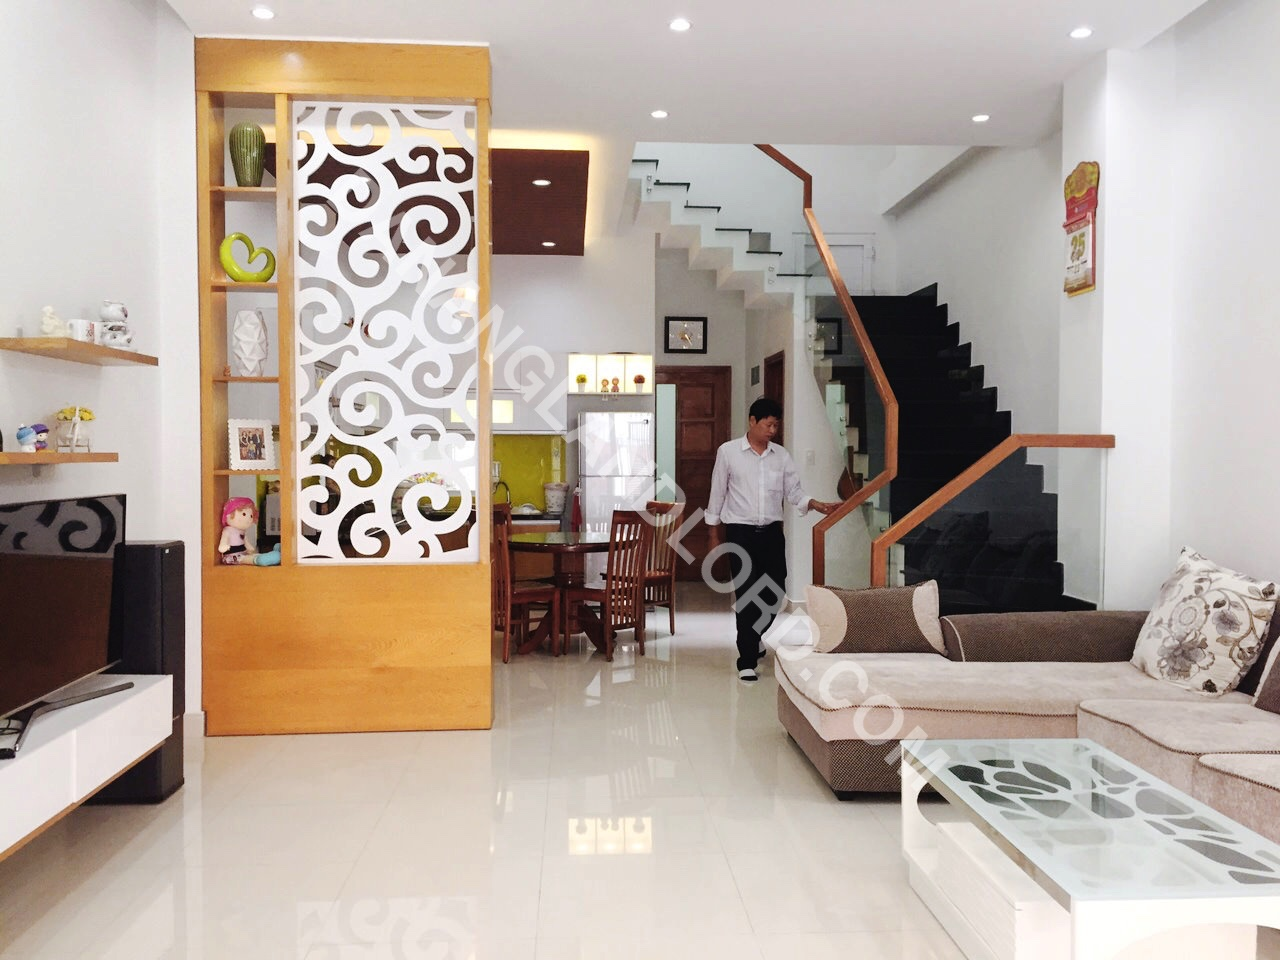 A Light And Airy House For Rent Near Pham Van Dong Beach